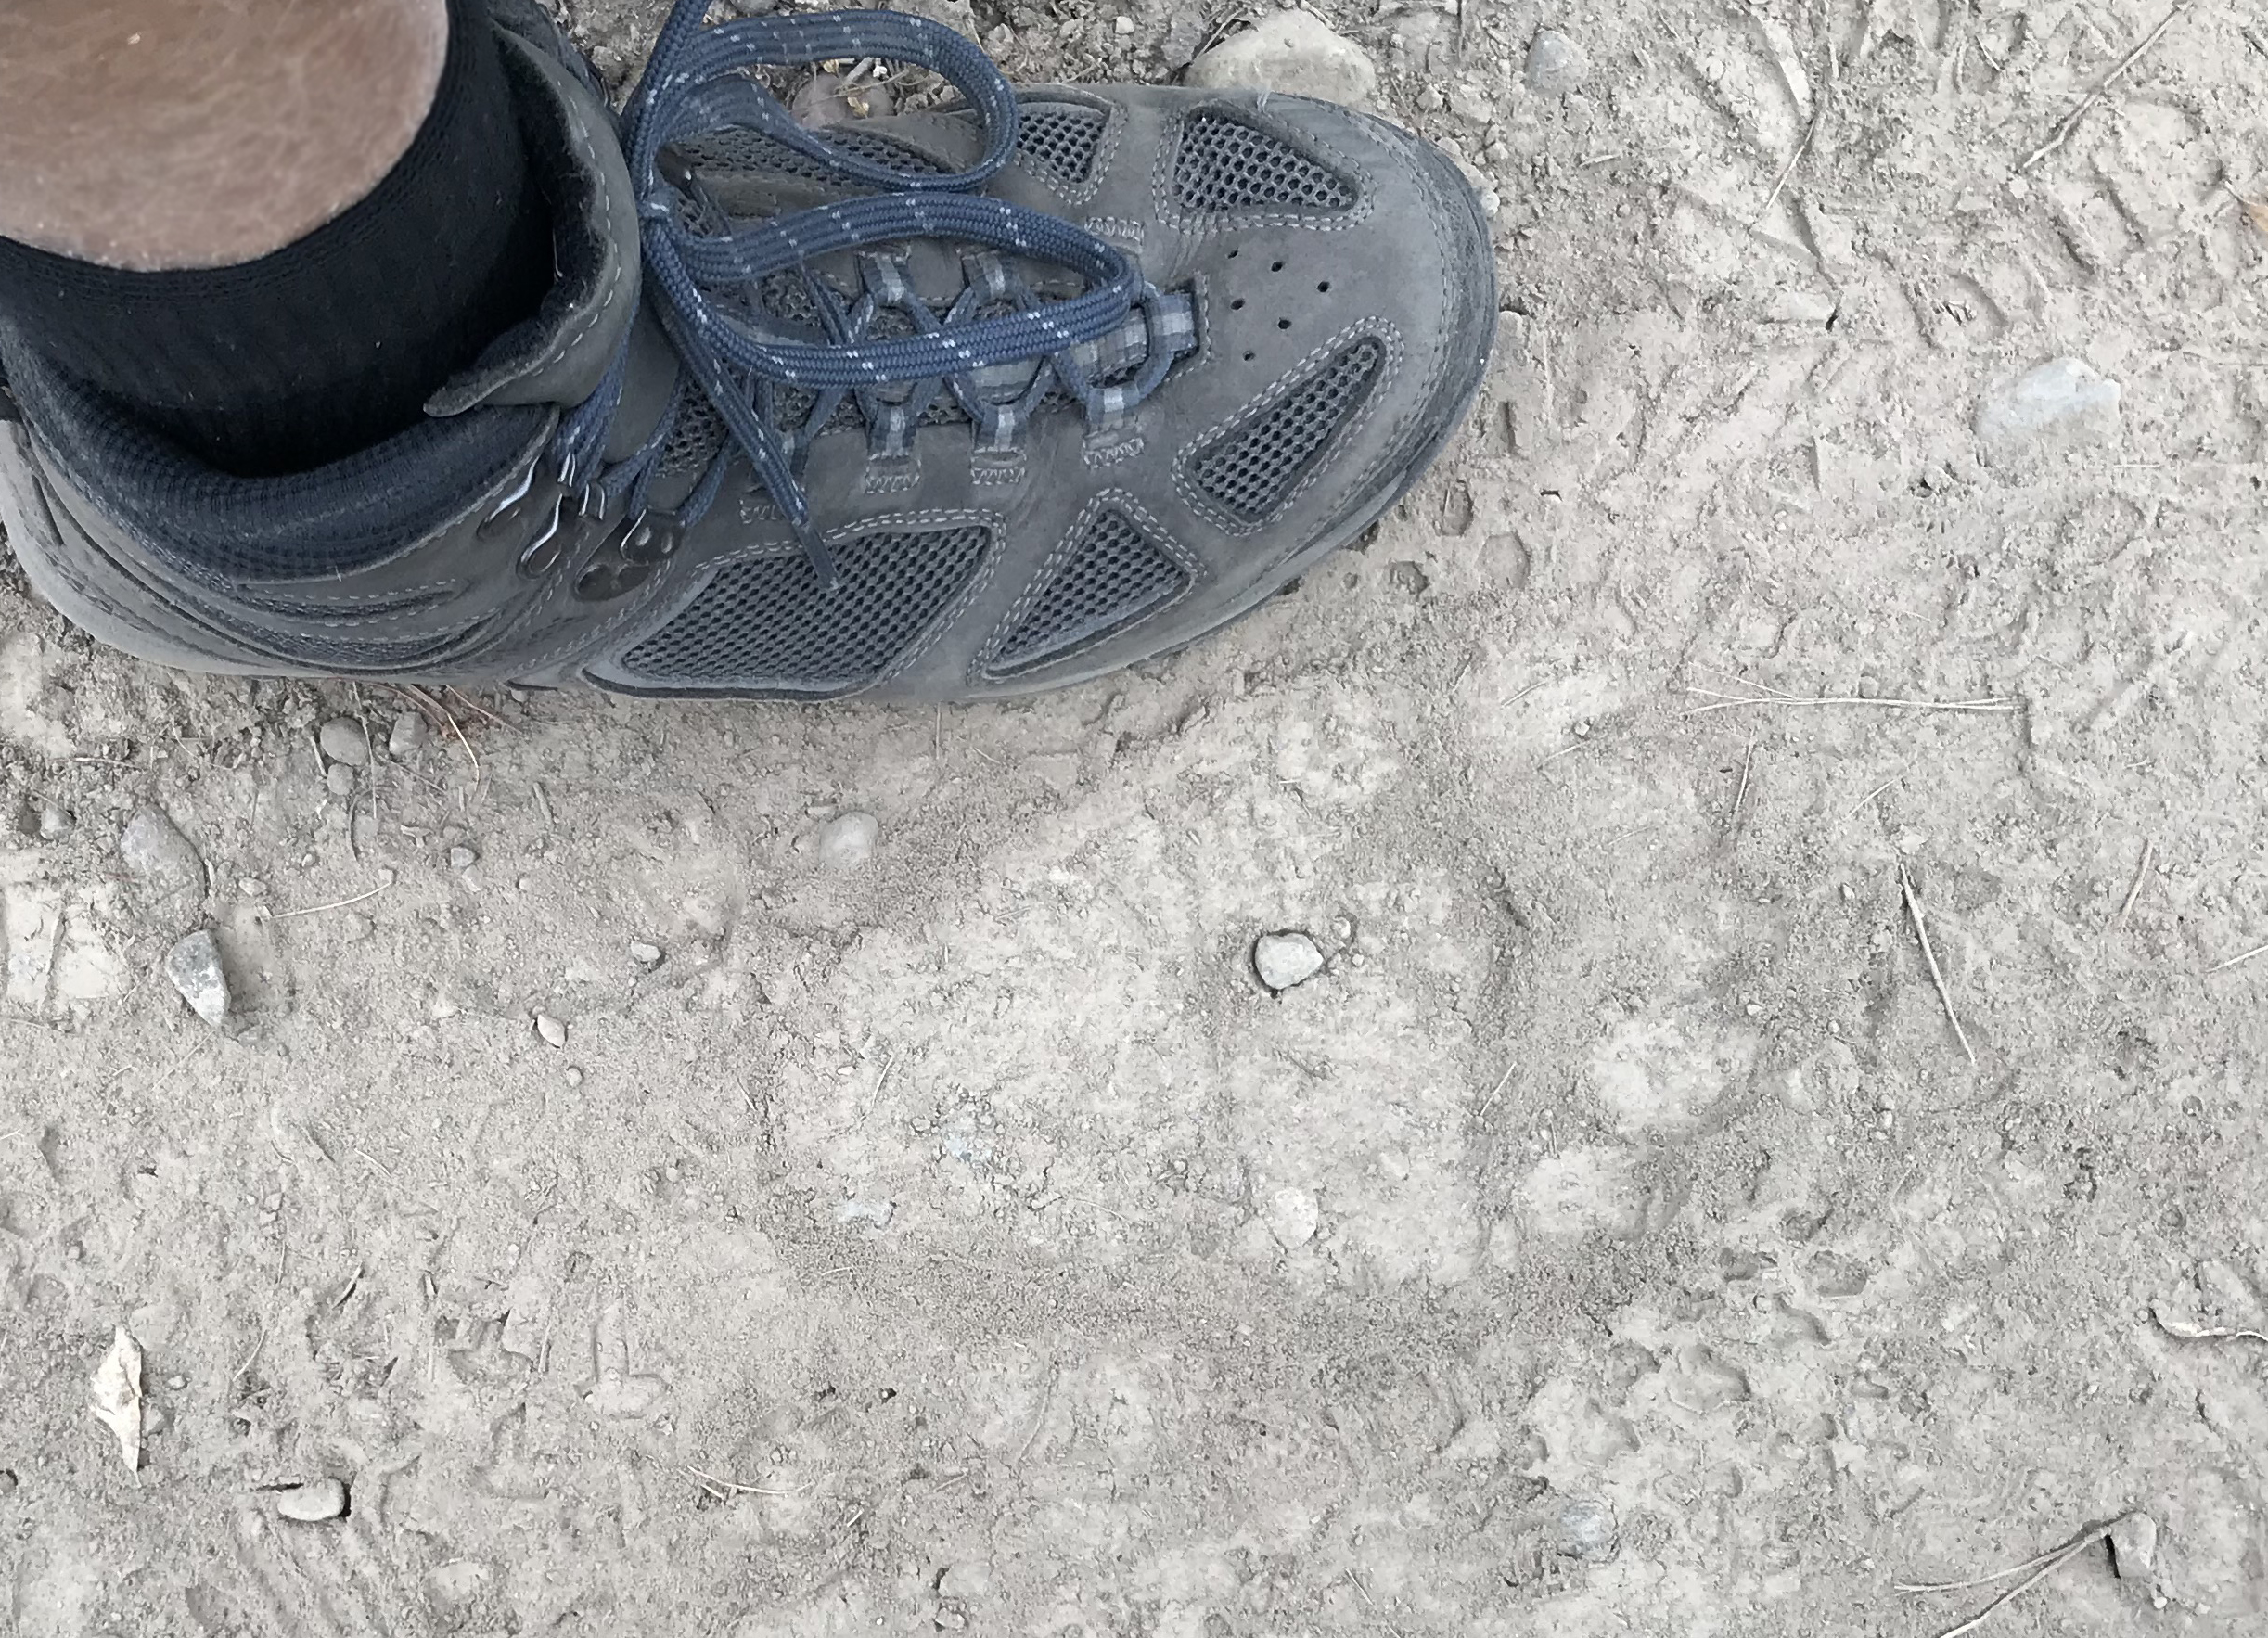 We confirmed with the Ranger... this is indeed a grizzly print.